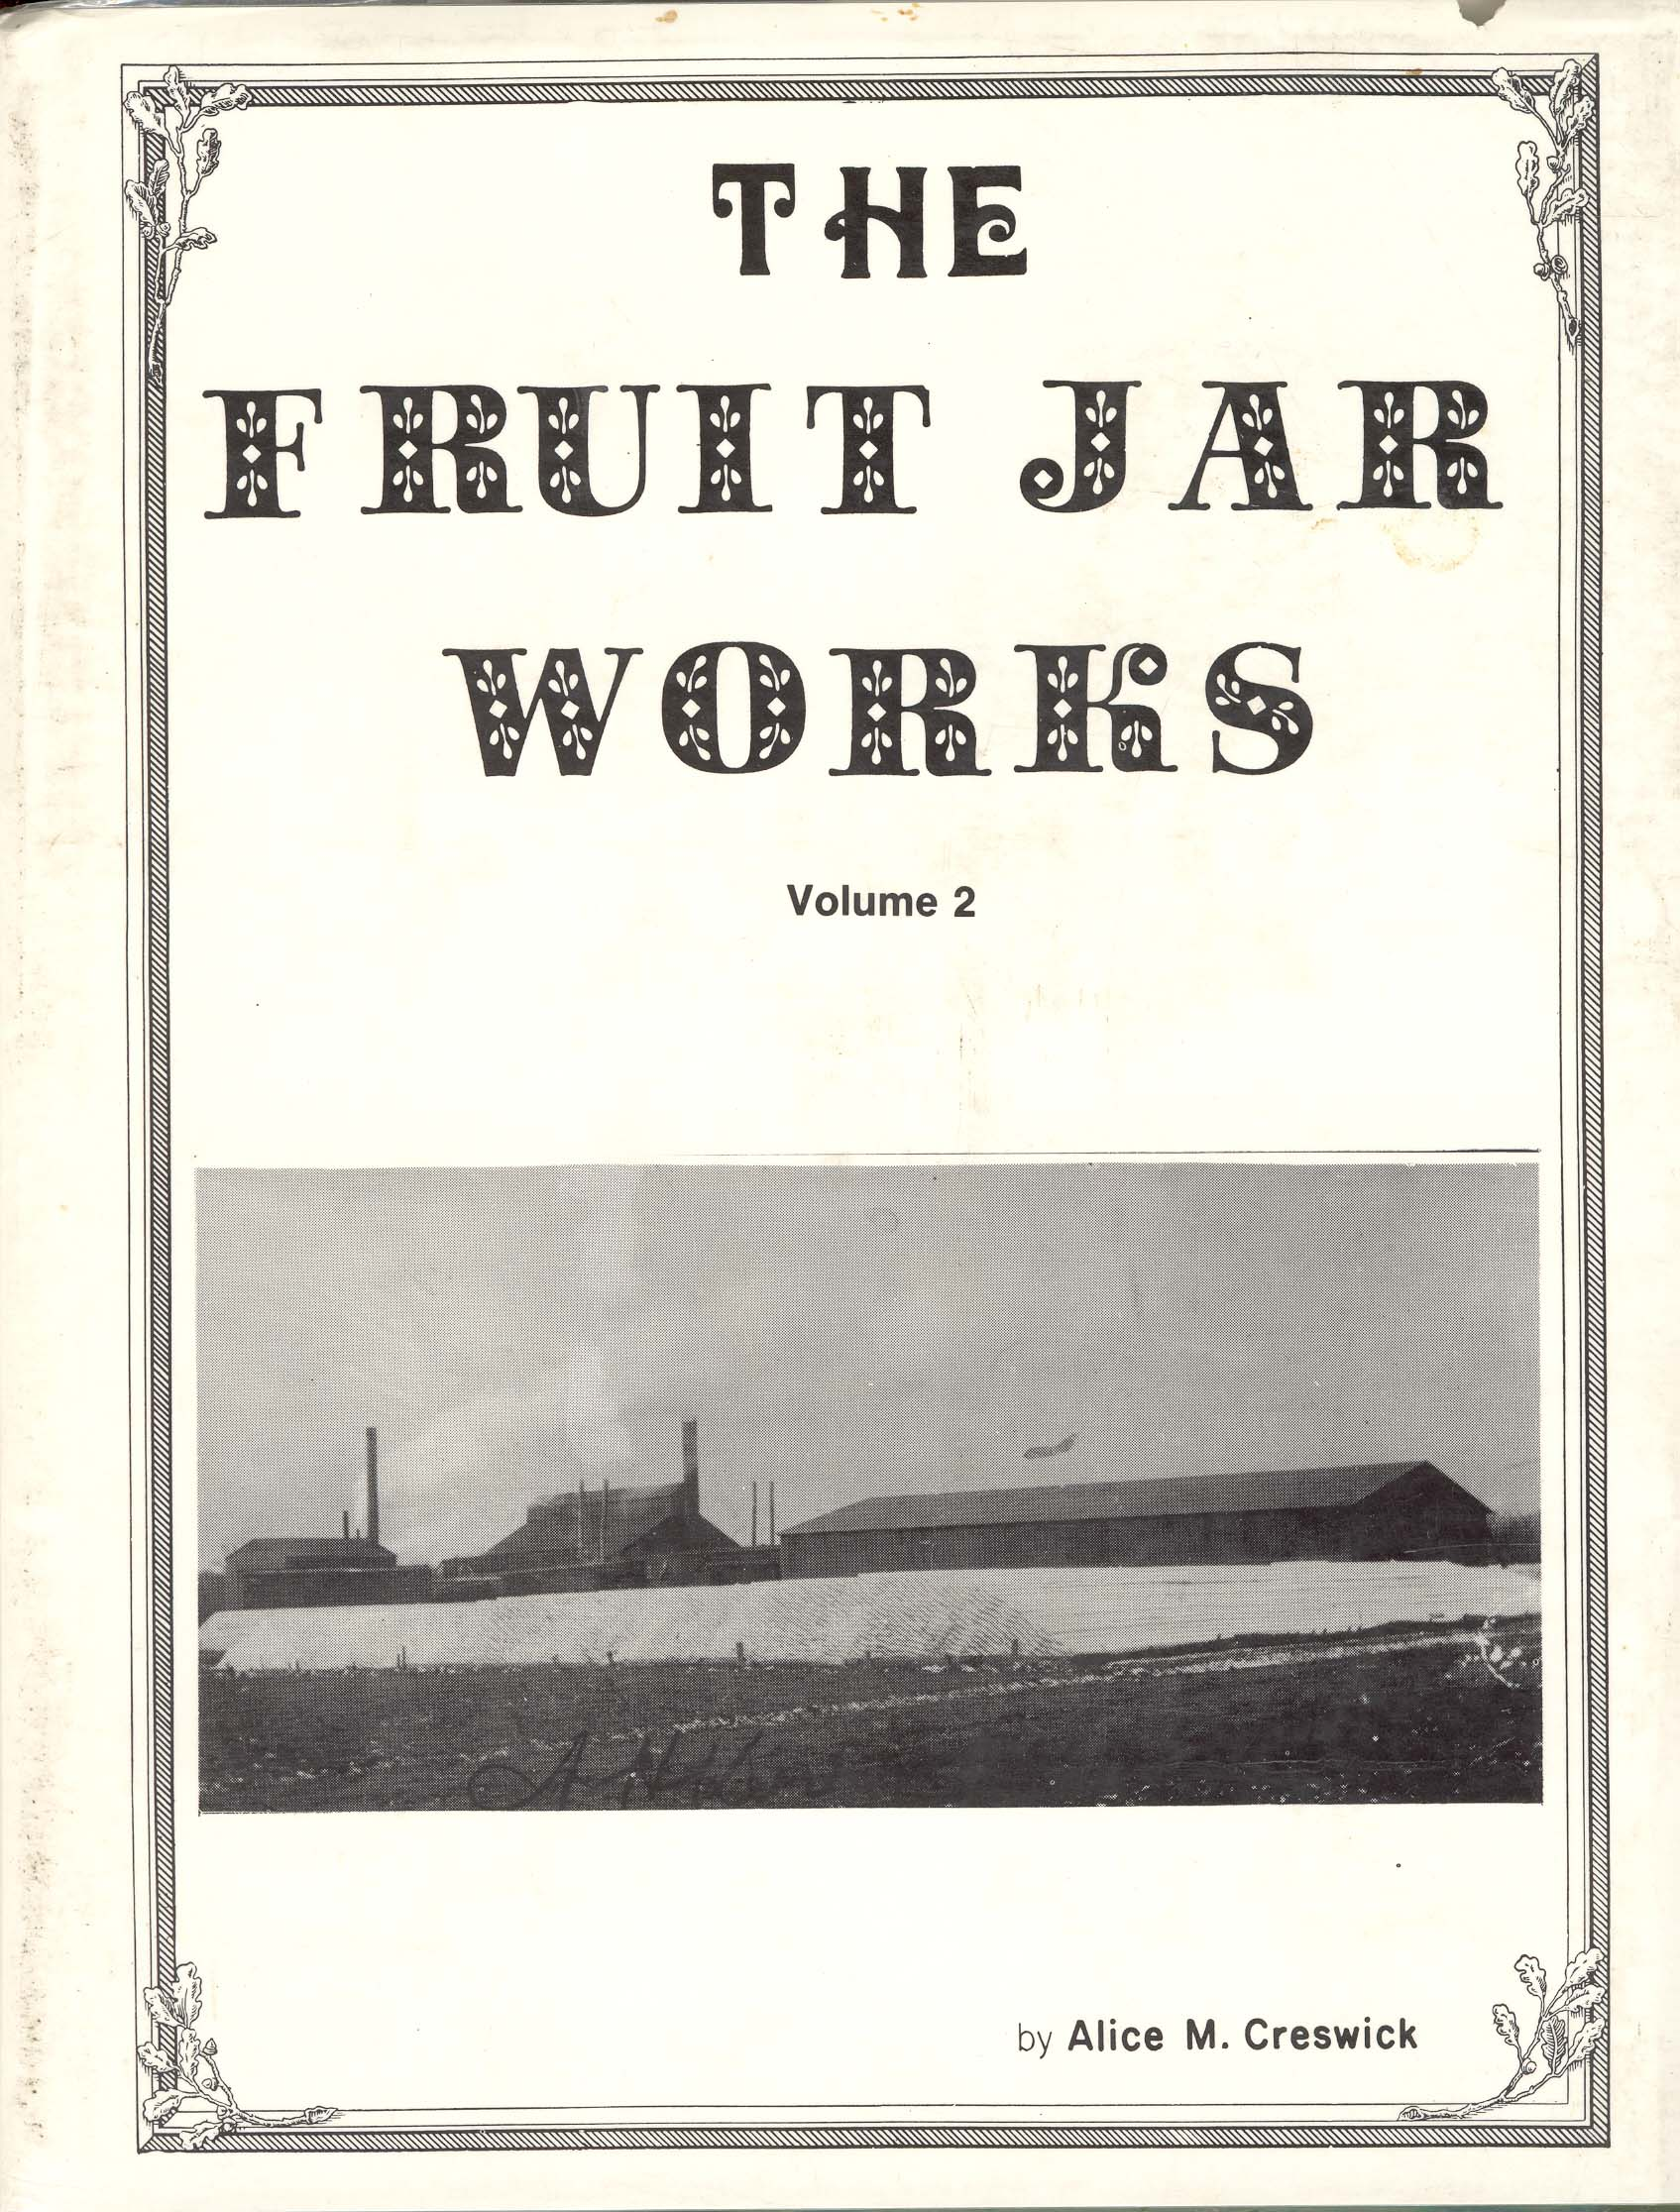 THE FRUIT JAR WORKS VOLUME 1 and 2 Alice Creswick with dust covers * signed